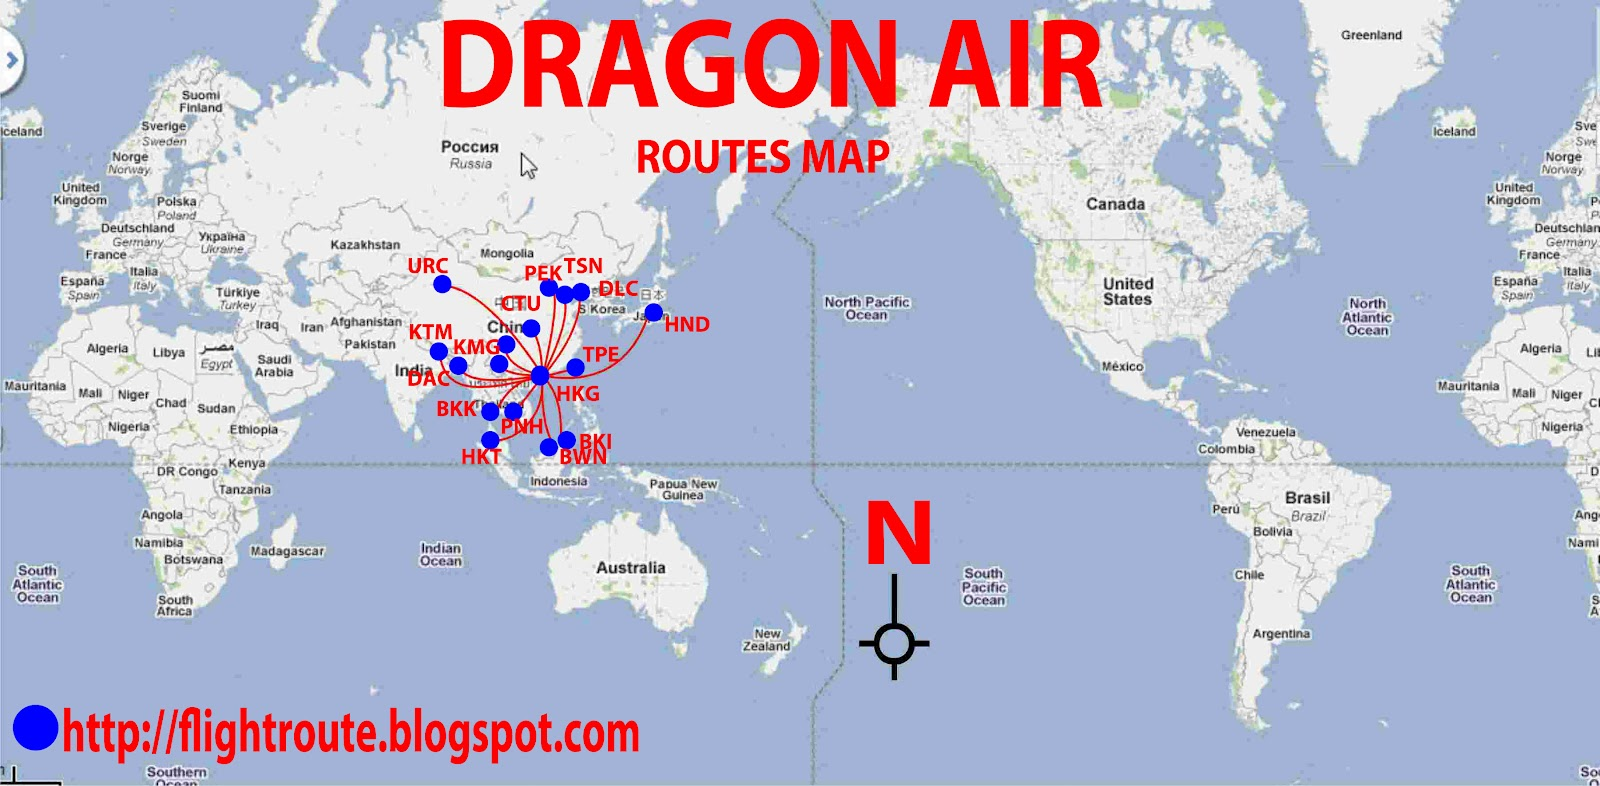 Civil aviation dragon air routes map dragon air routes map dragon air flights publicscrutiny Choice Image